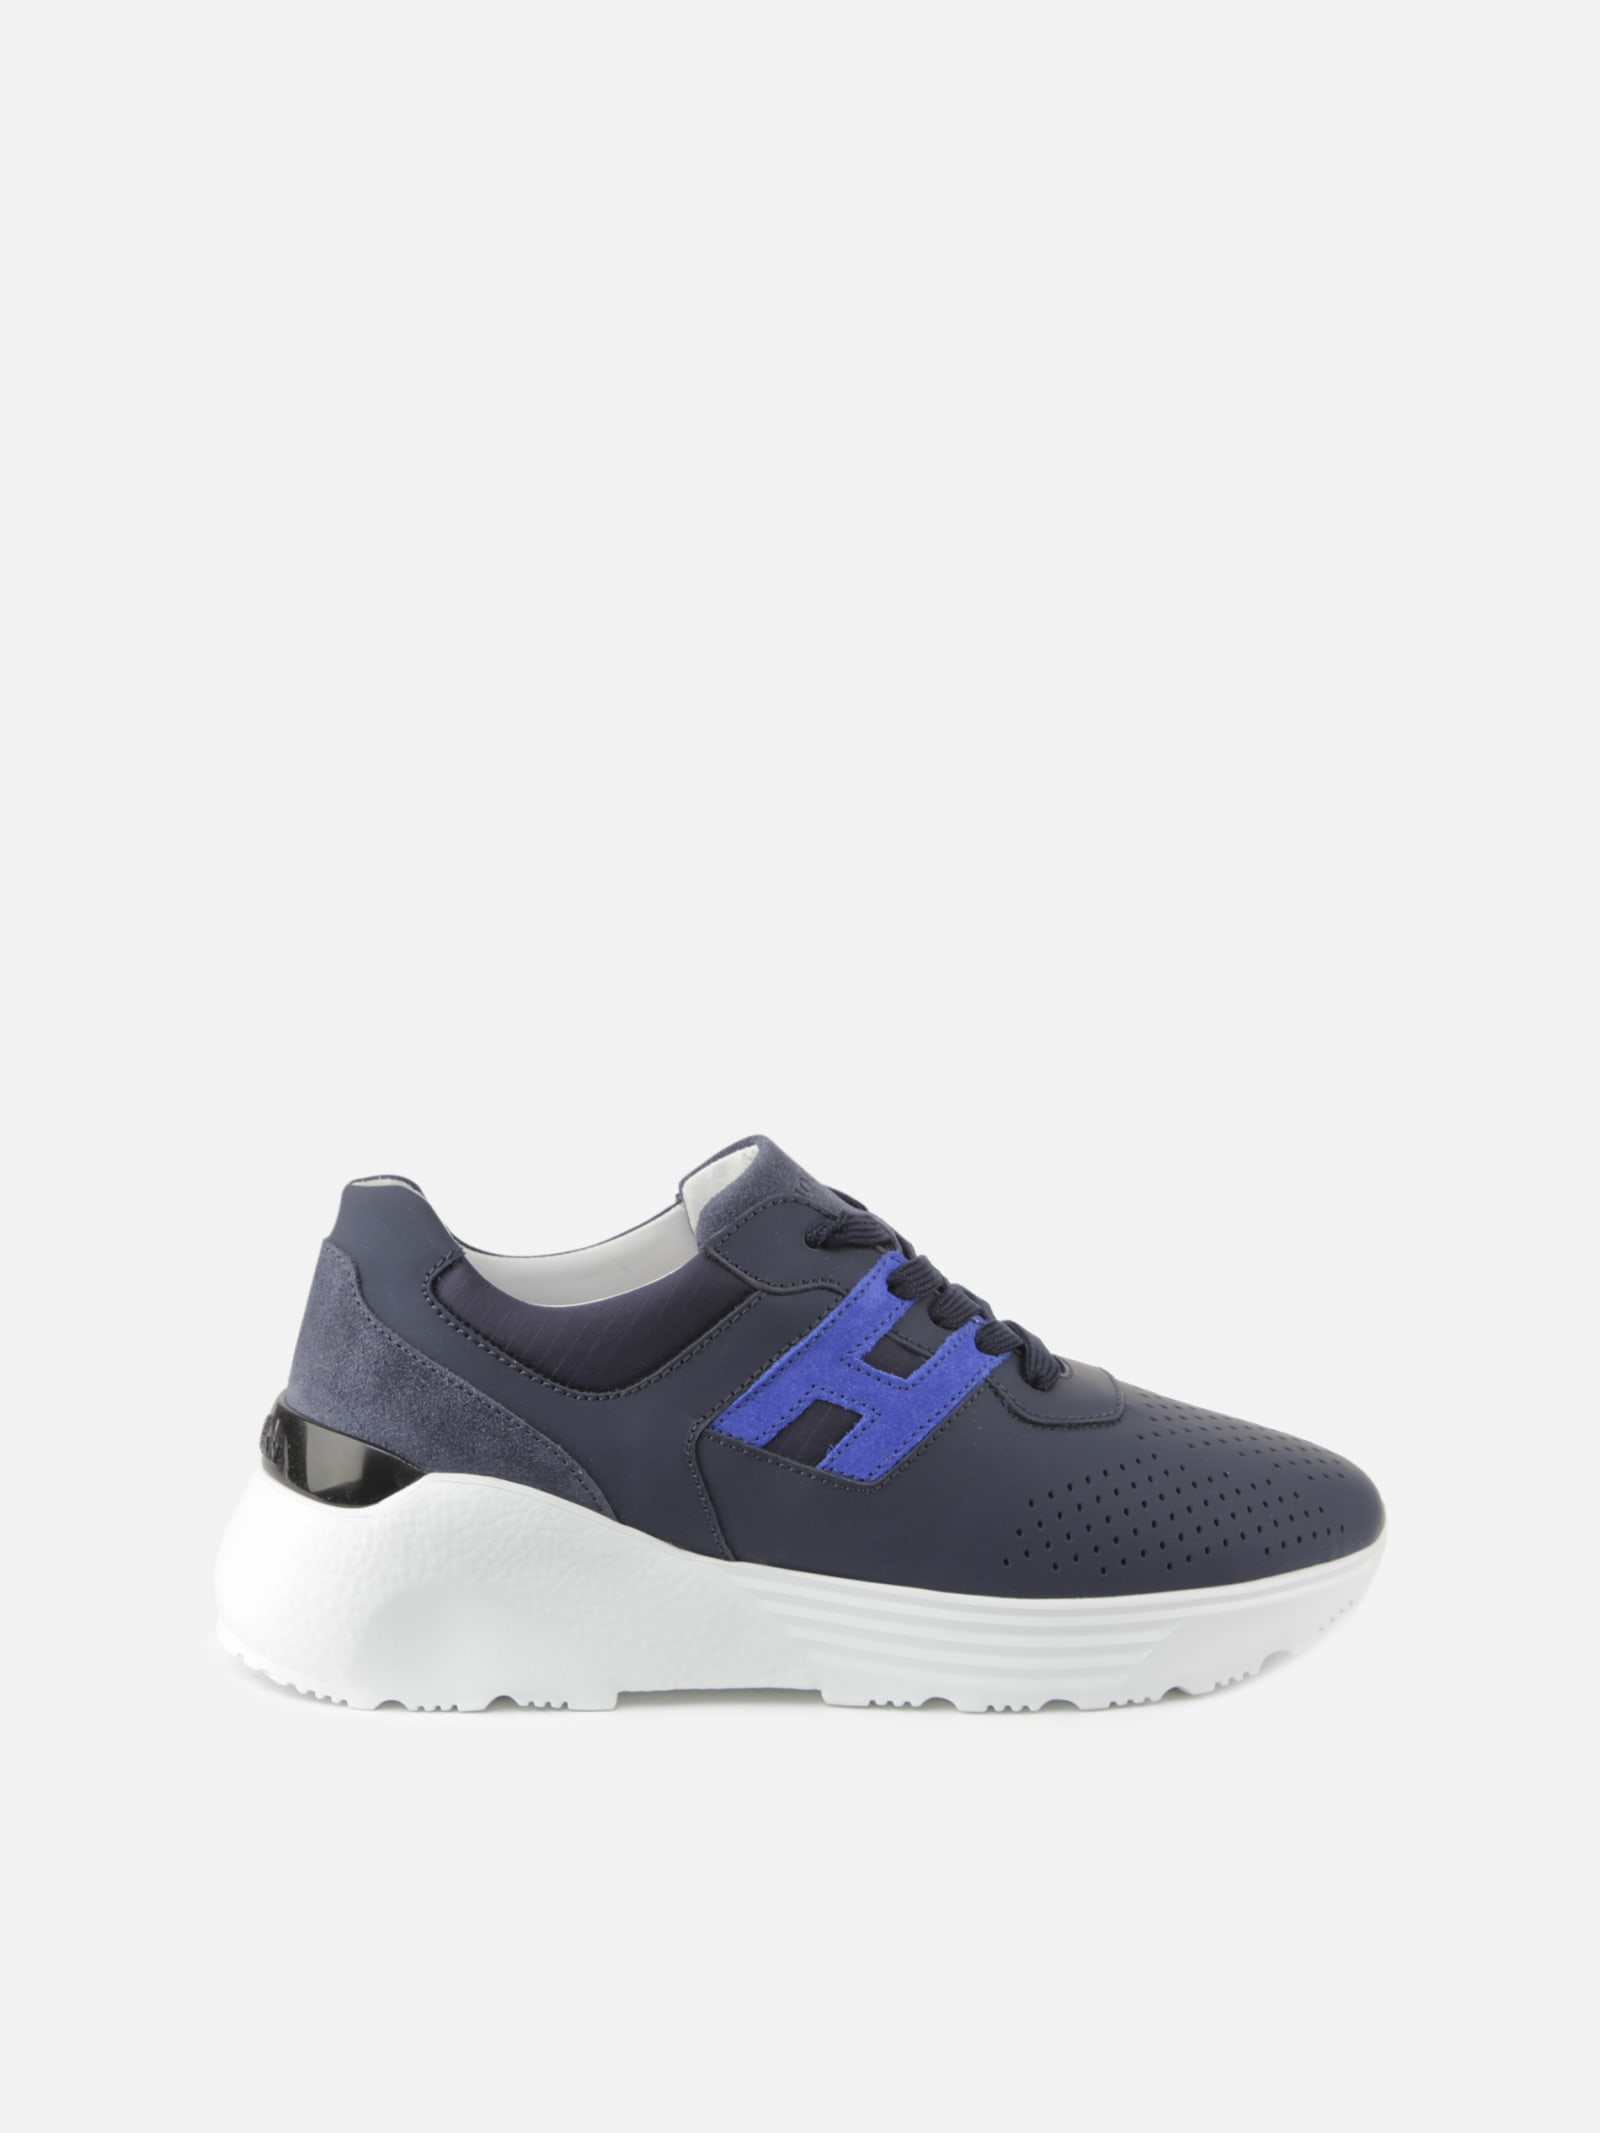 Hogan ACTIVE ONE SNEAKERS IN RUBBER-EFFECT LEATHER